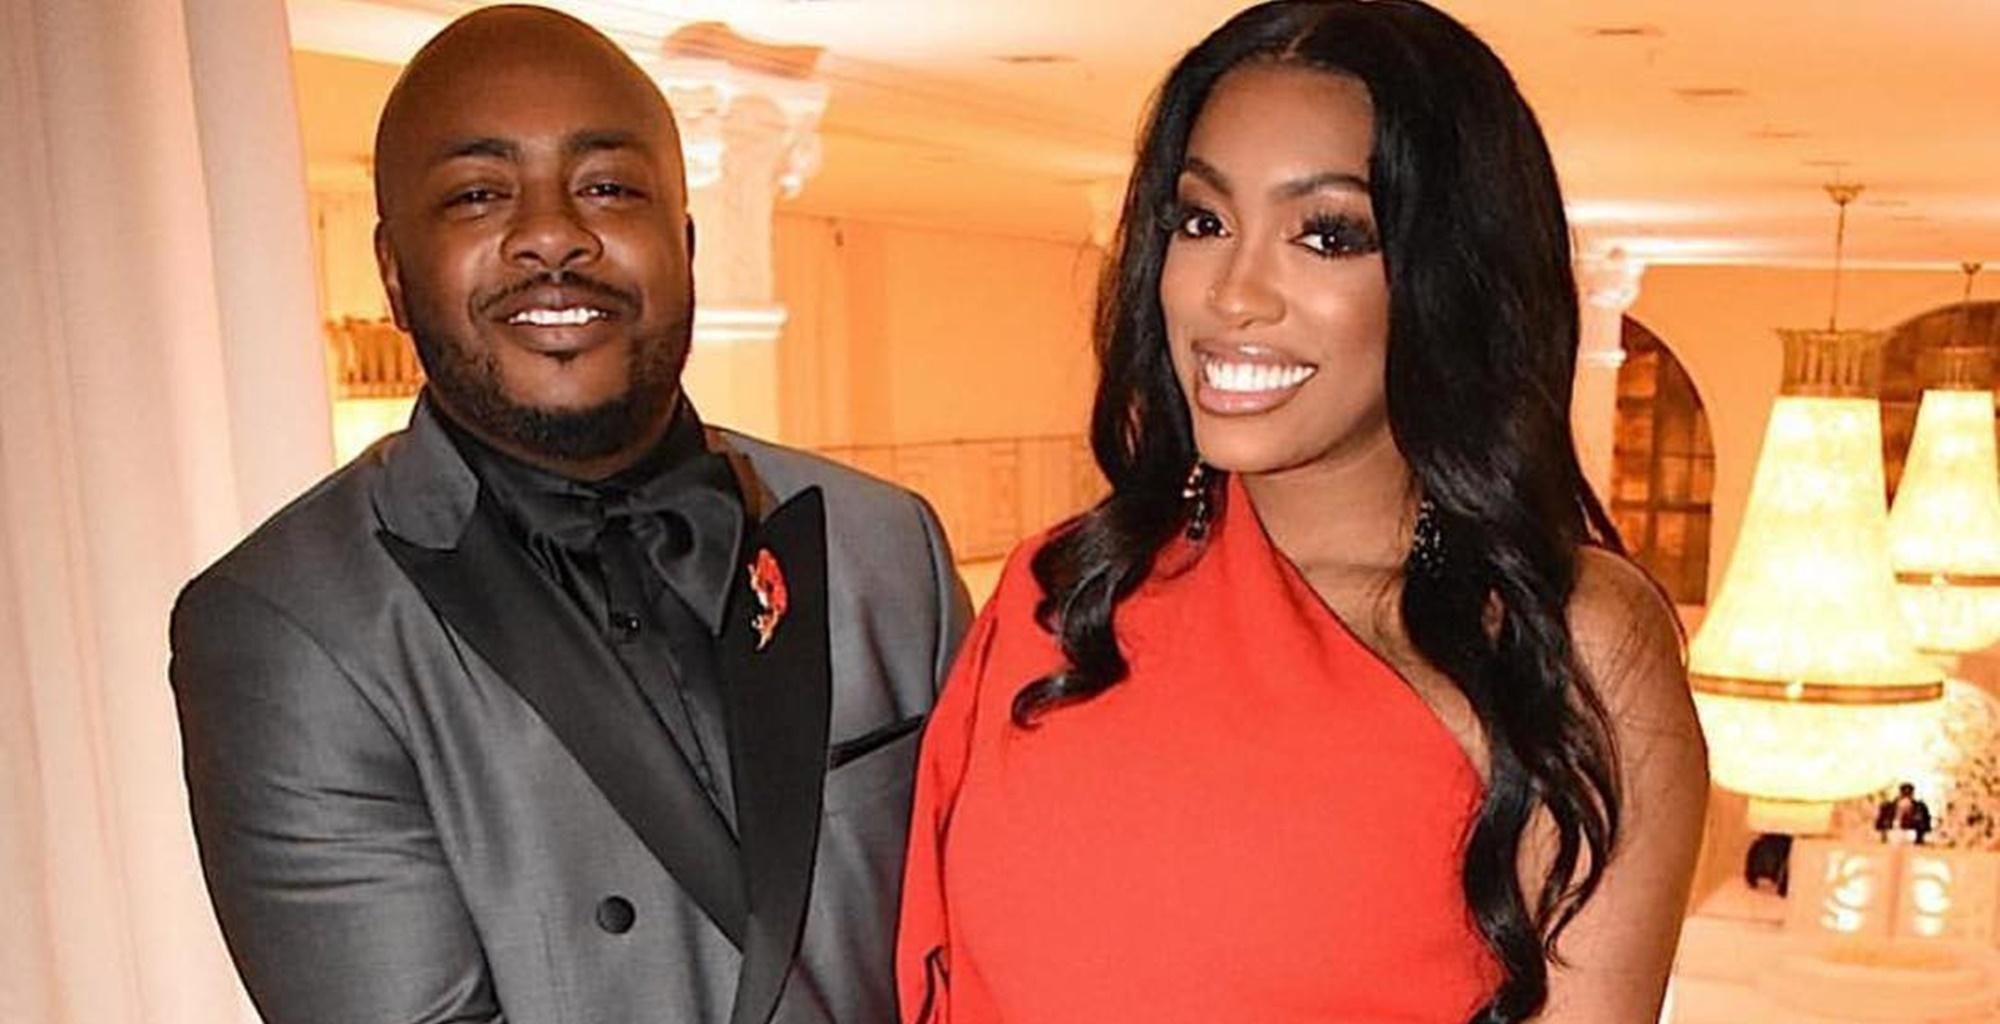 RHOA Recap: Porsha Williams Realizes That Dennis McKinley Has Been Texting His Ex Behind Her Back - Is He Cheating?